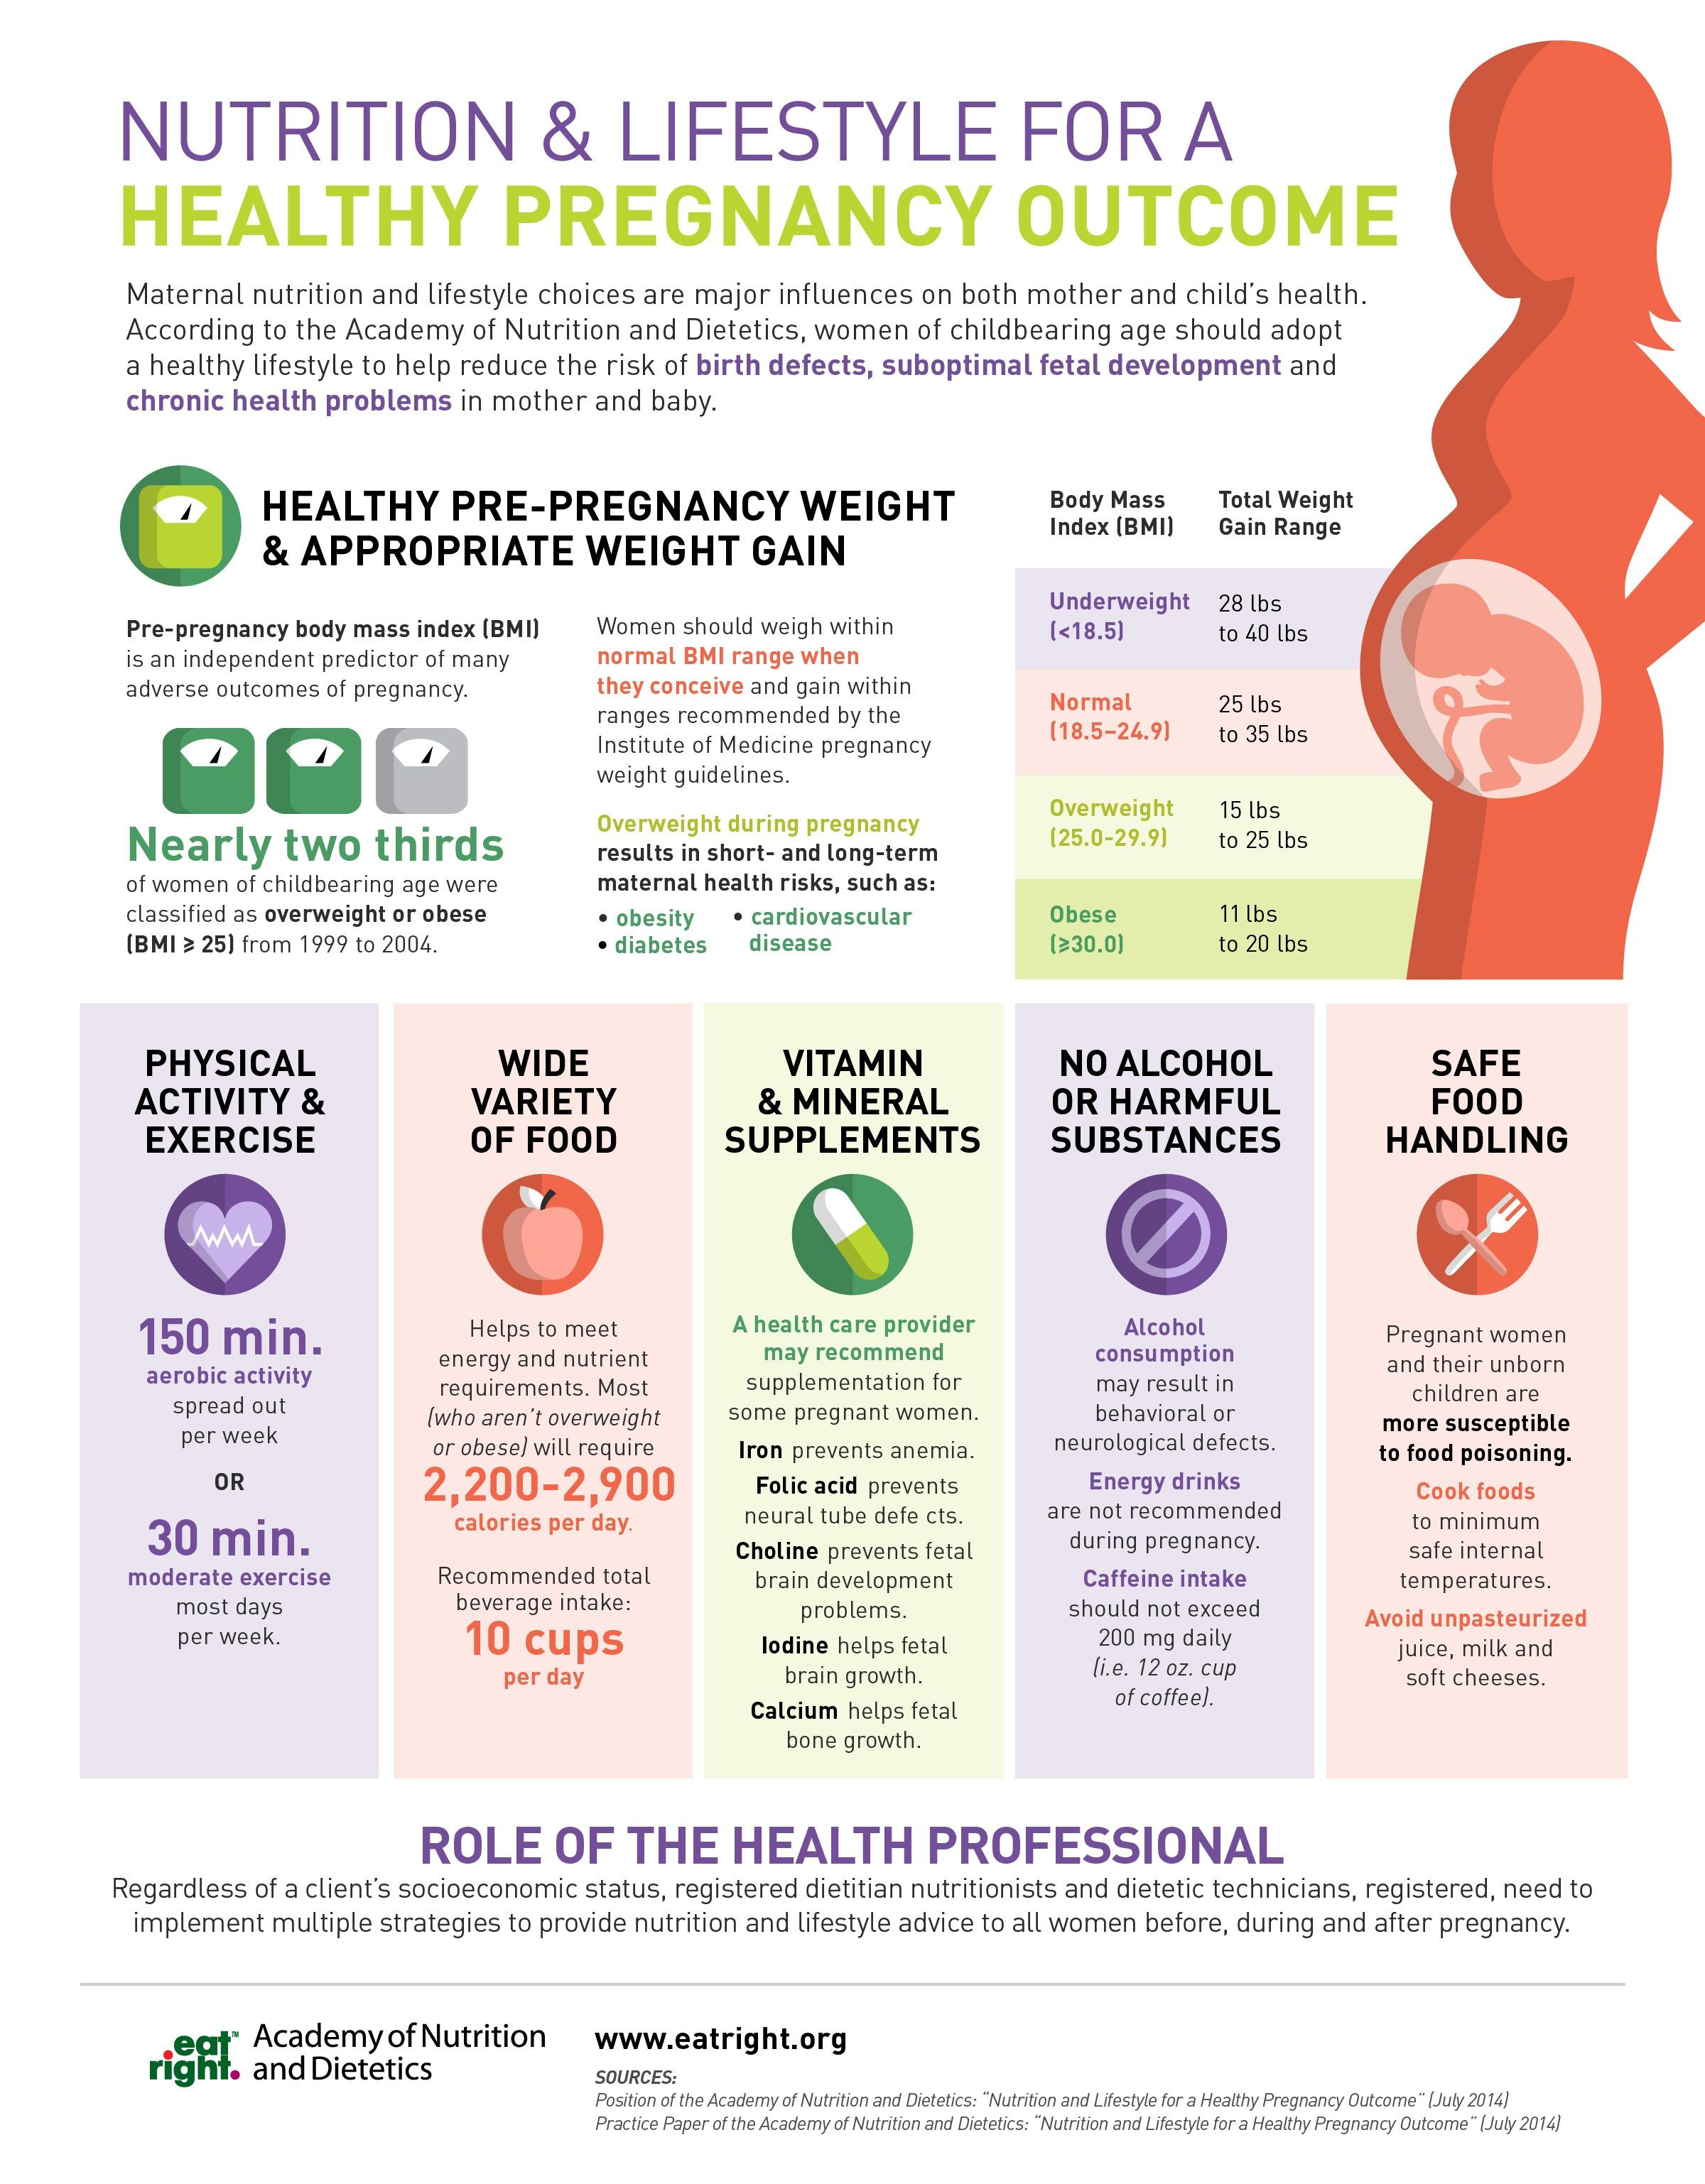 Nutrition And Lifestyle For A Healthy Pregnancy Infographic